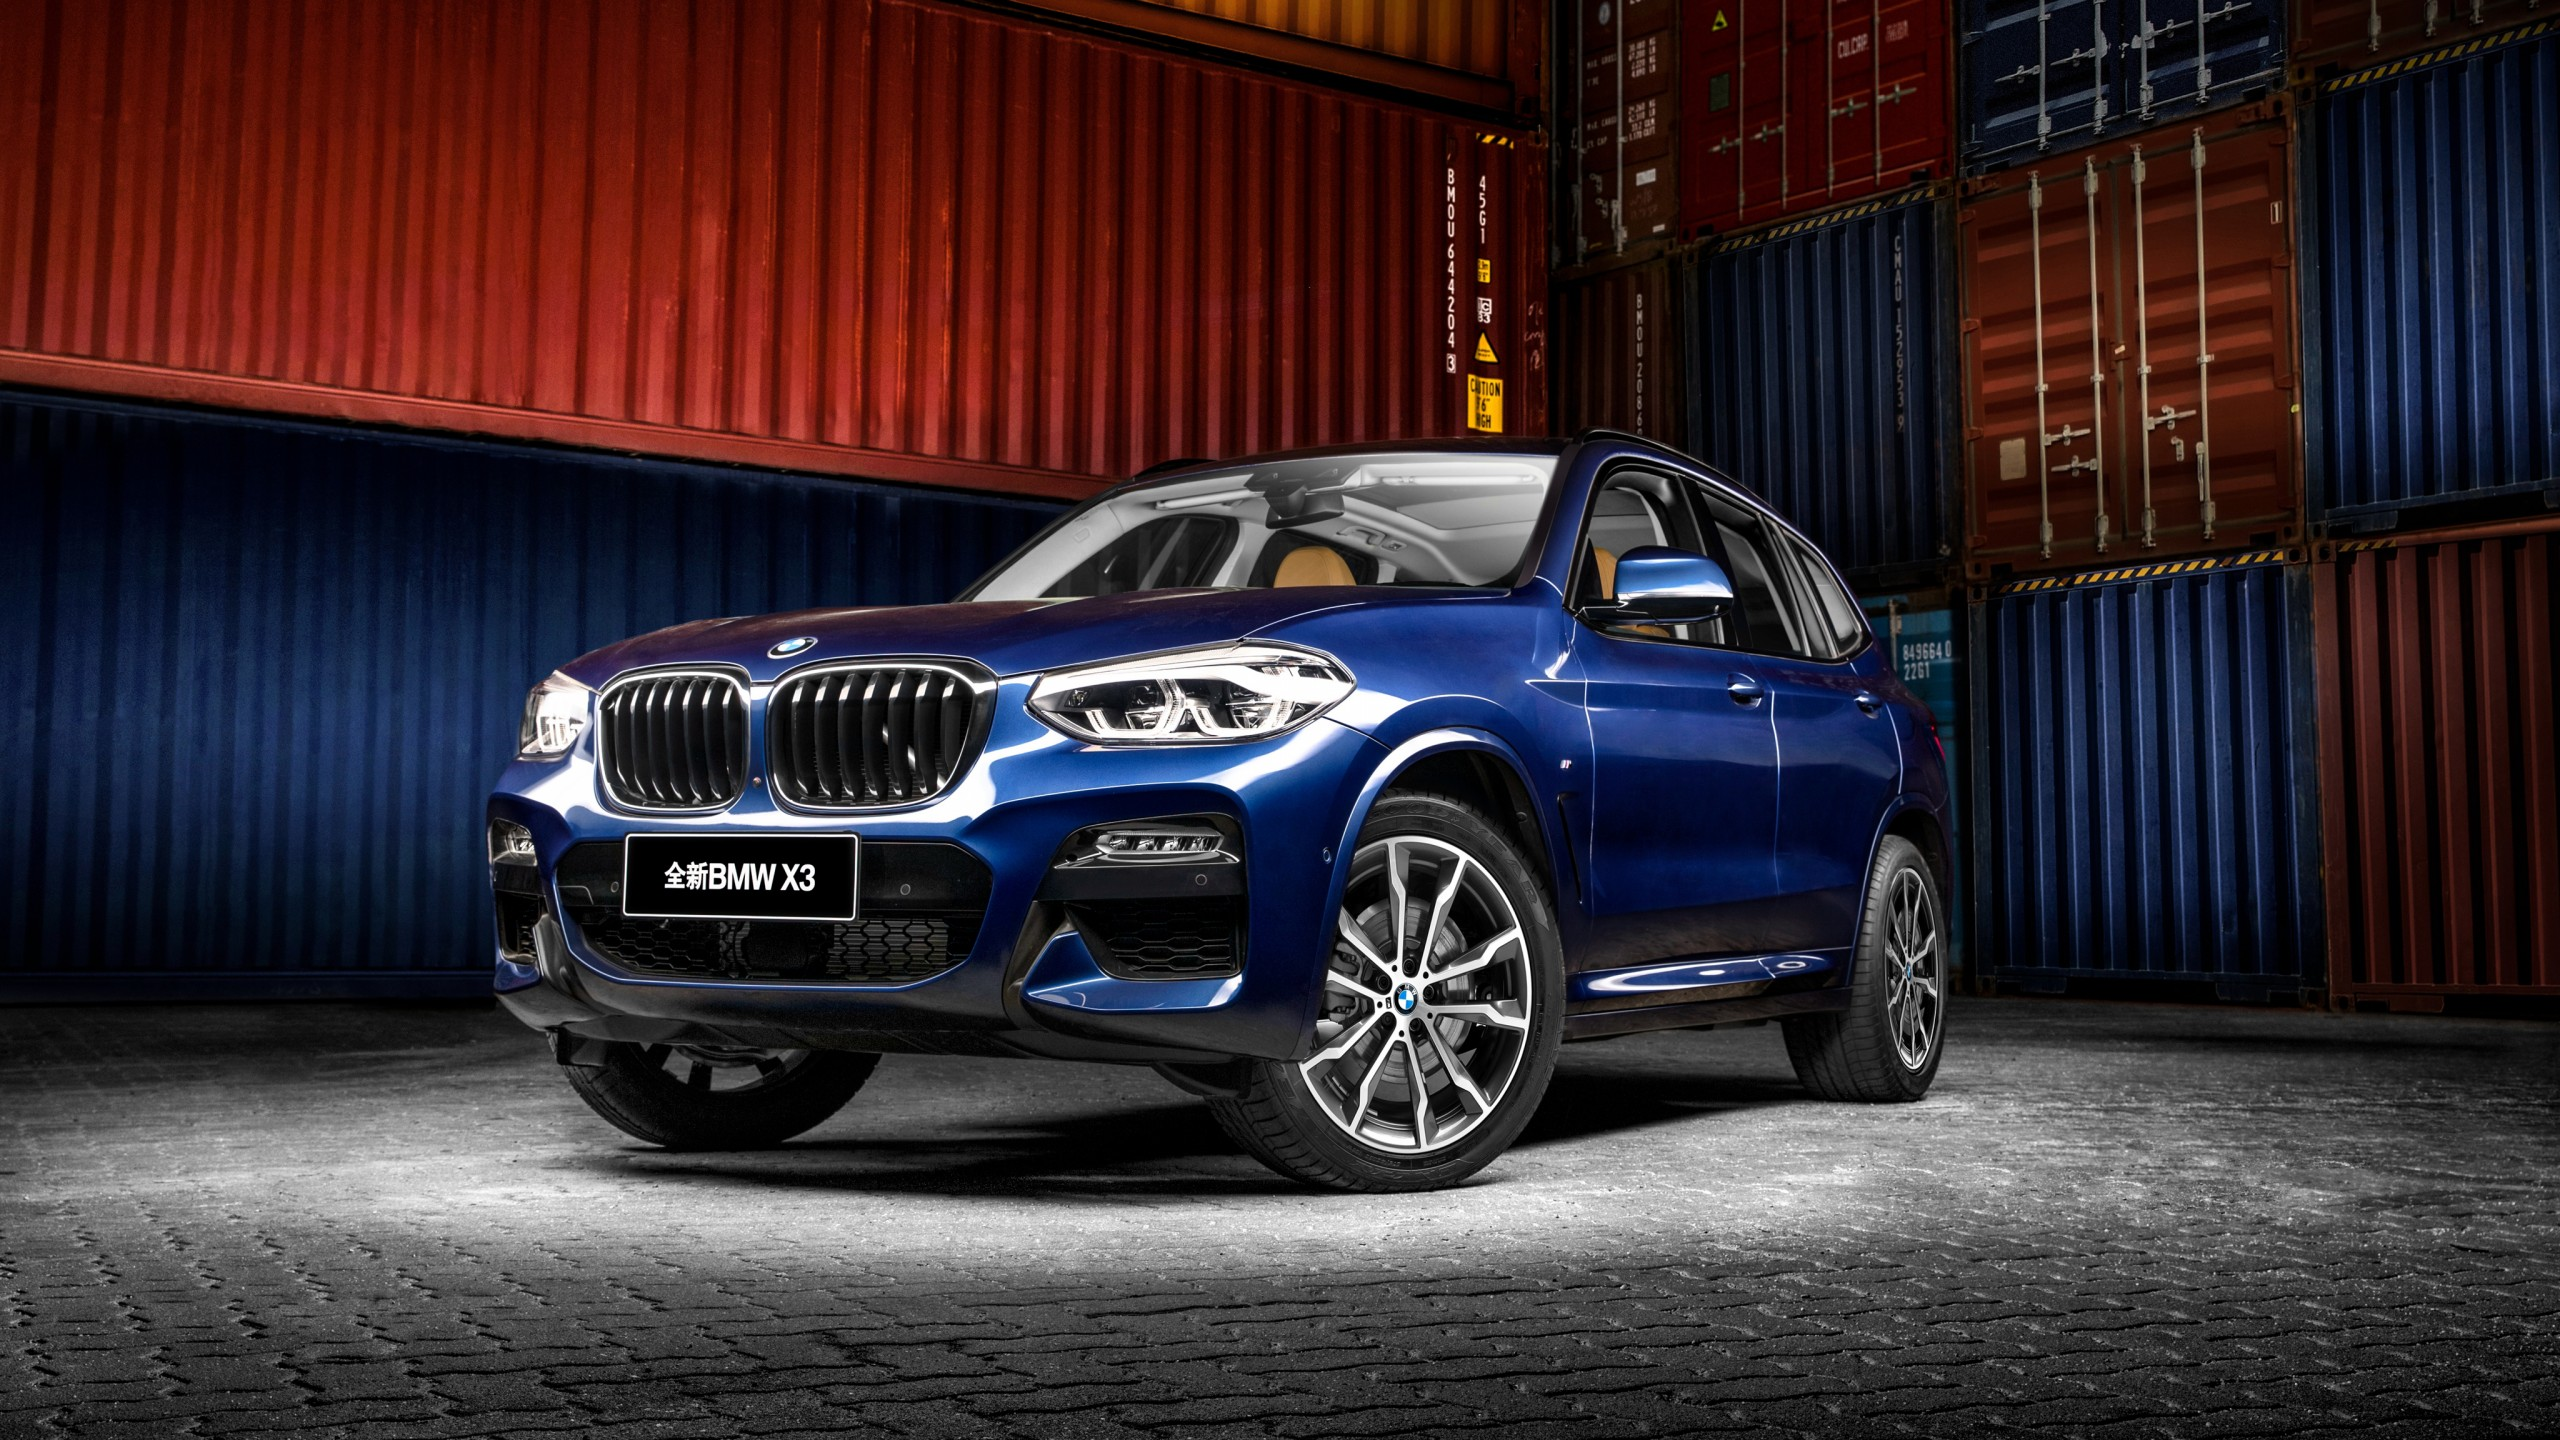 2018 BMW X3 xDrive30i M Sport China 4K 2 Wallpaper | HD ...